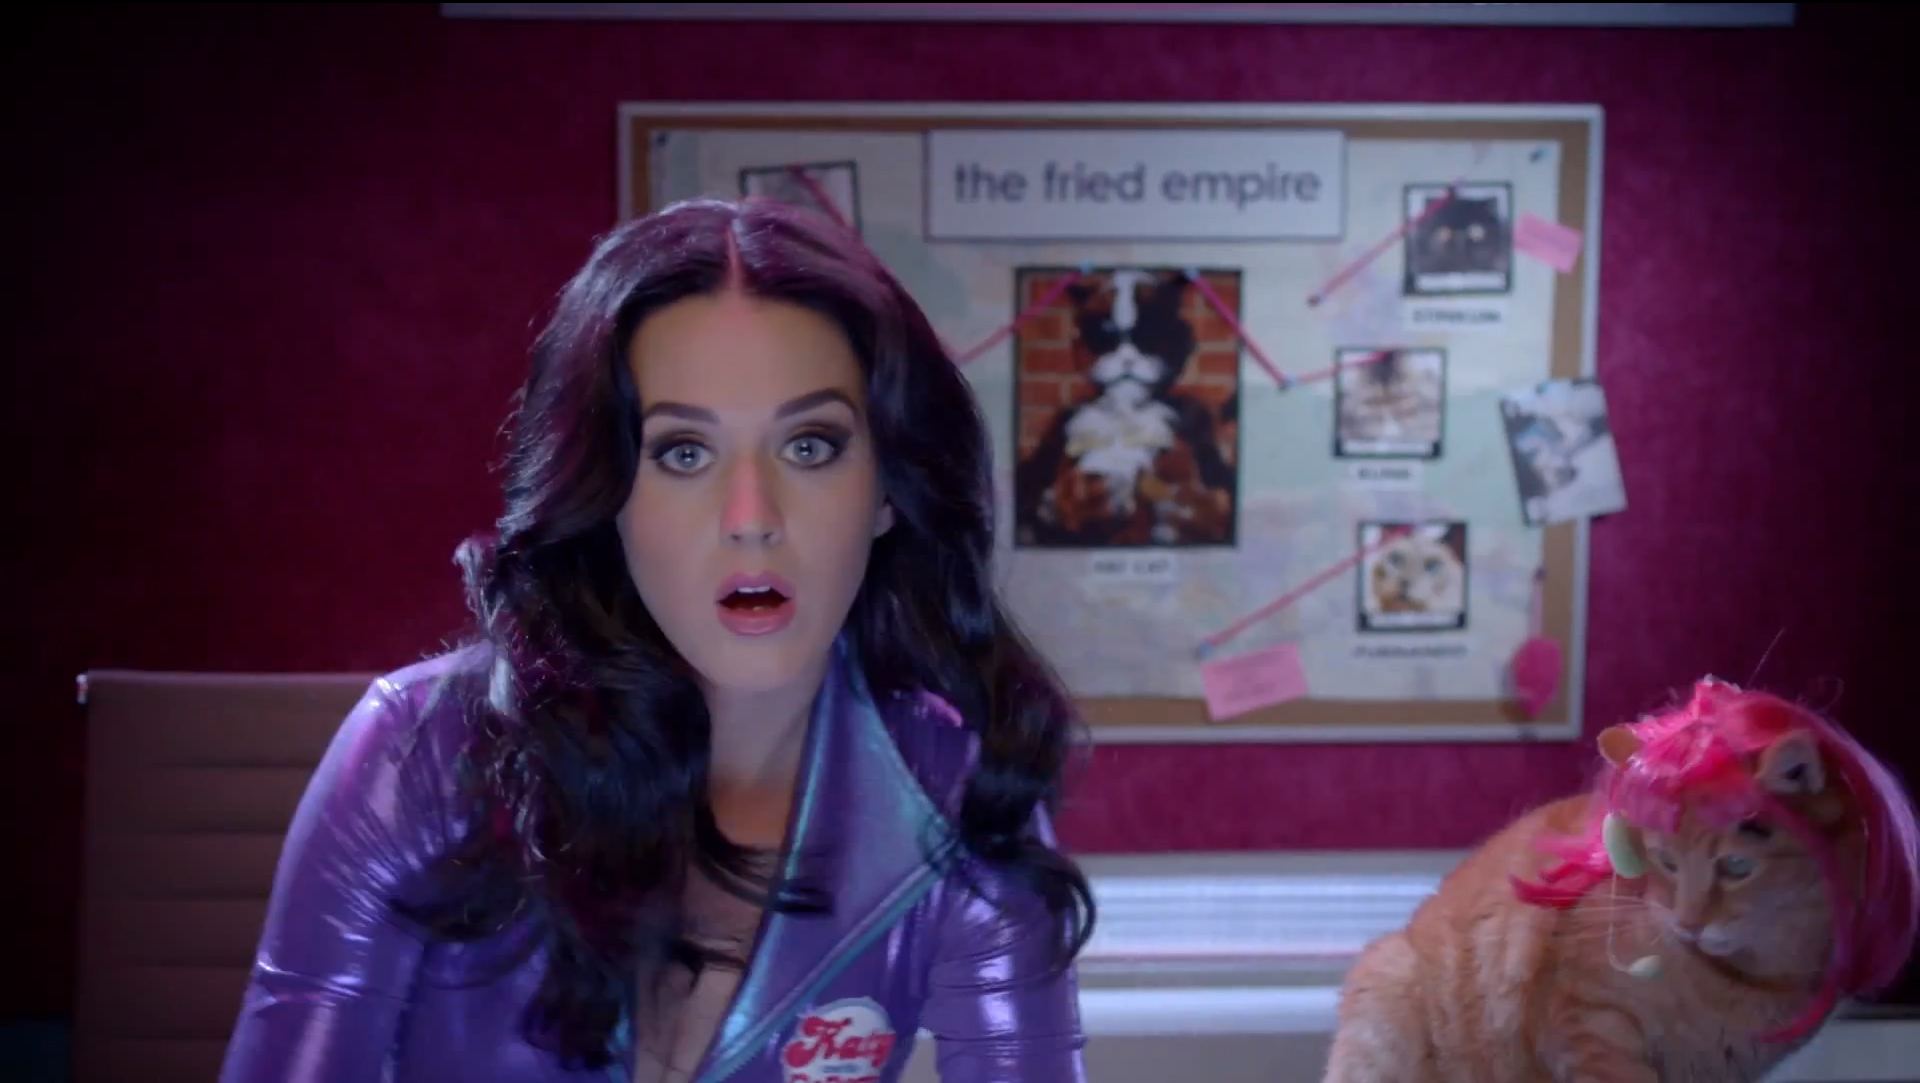 Eye popping: Katy Perry stars alongside some wig wearing cats in a hilarious promotional video (Photo: YouTube)